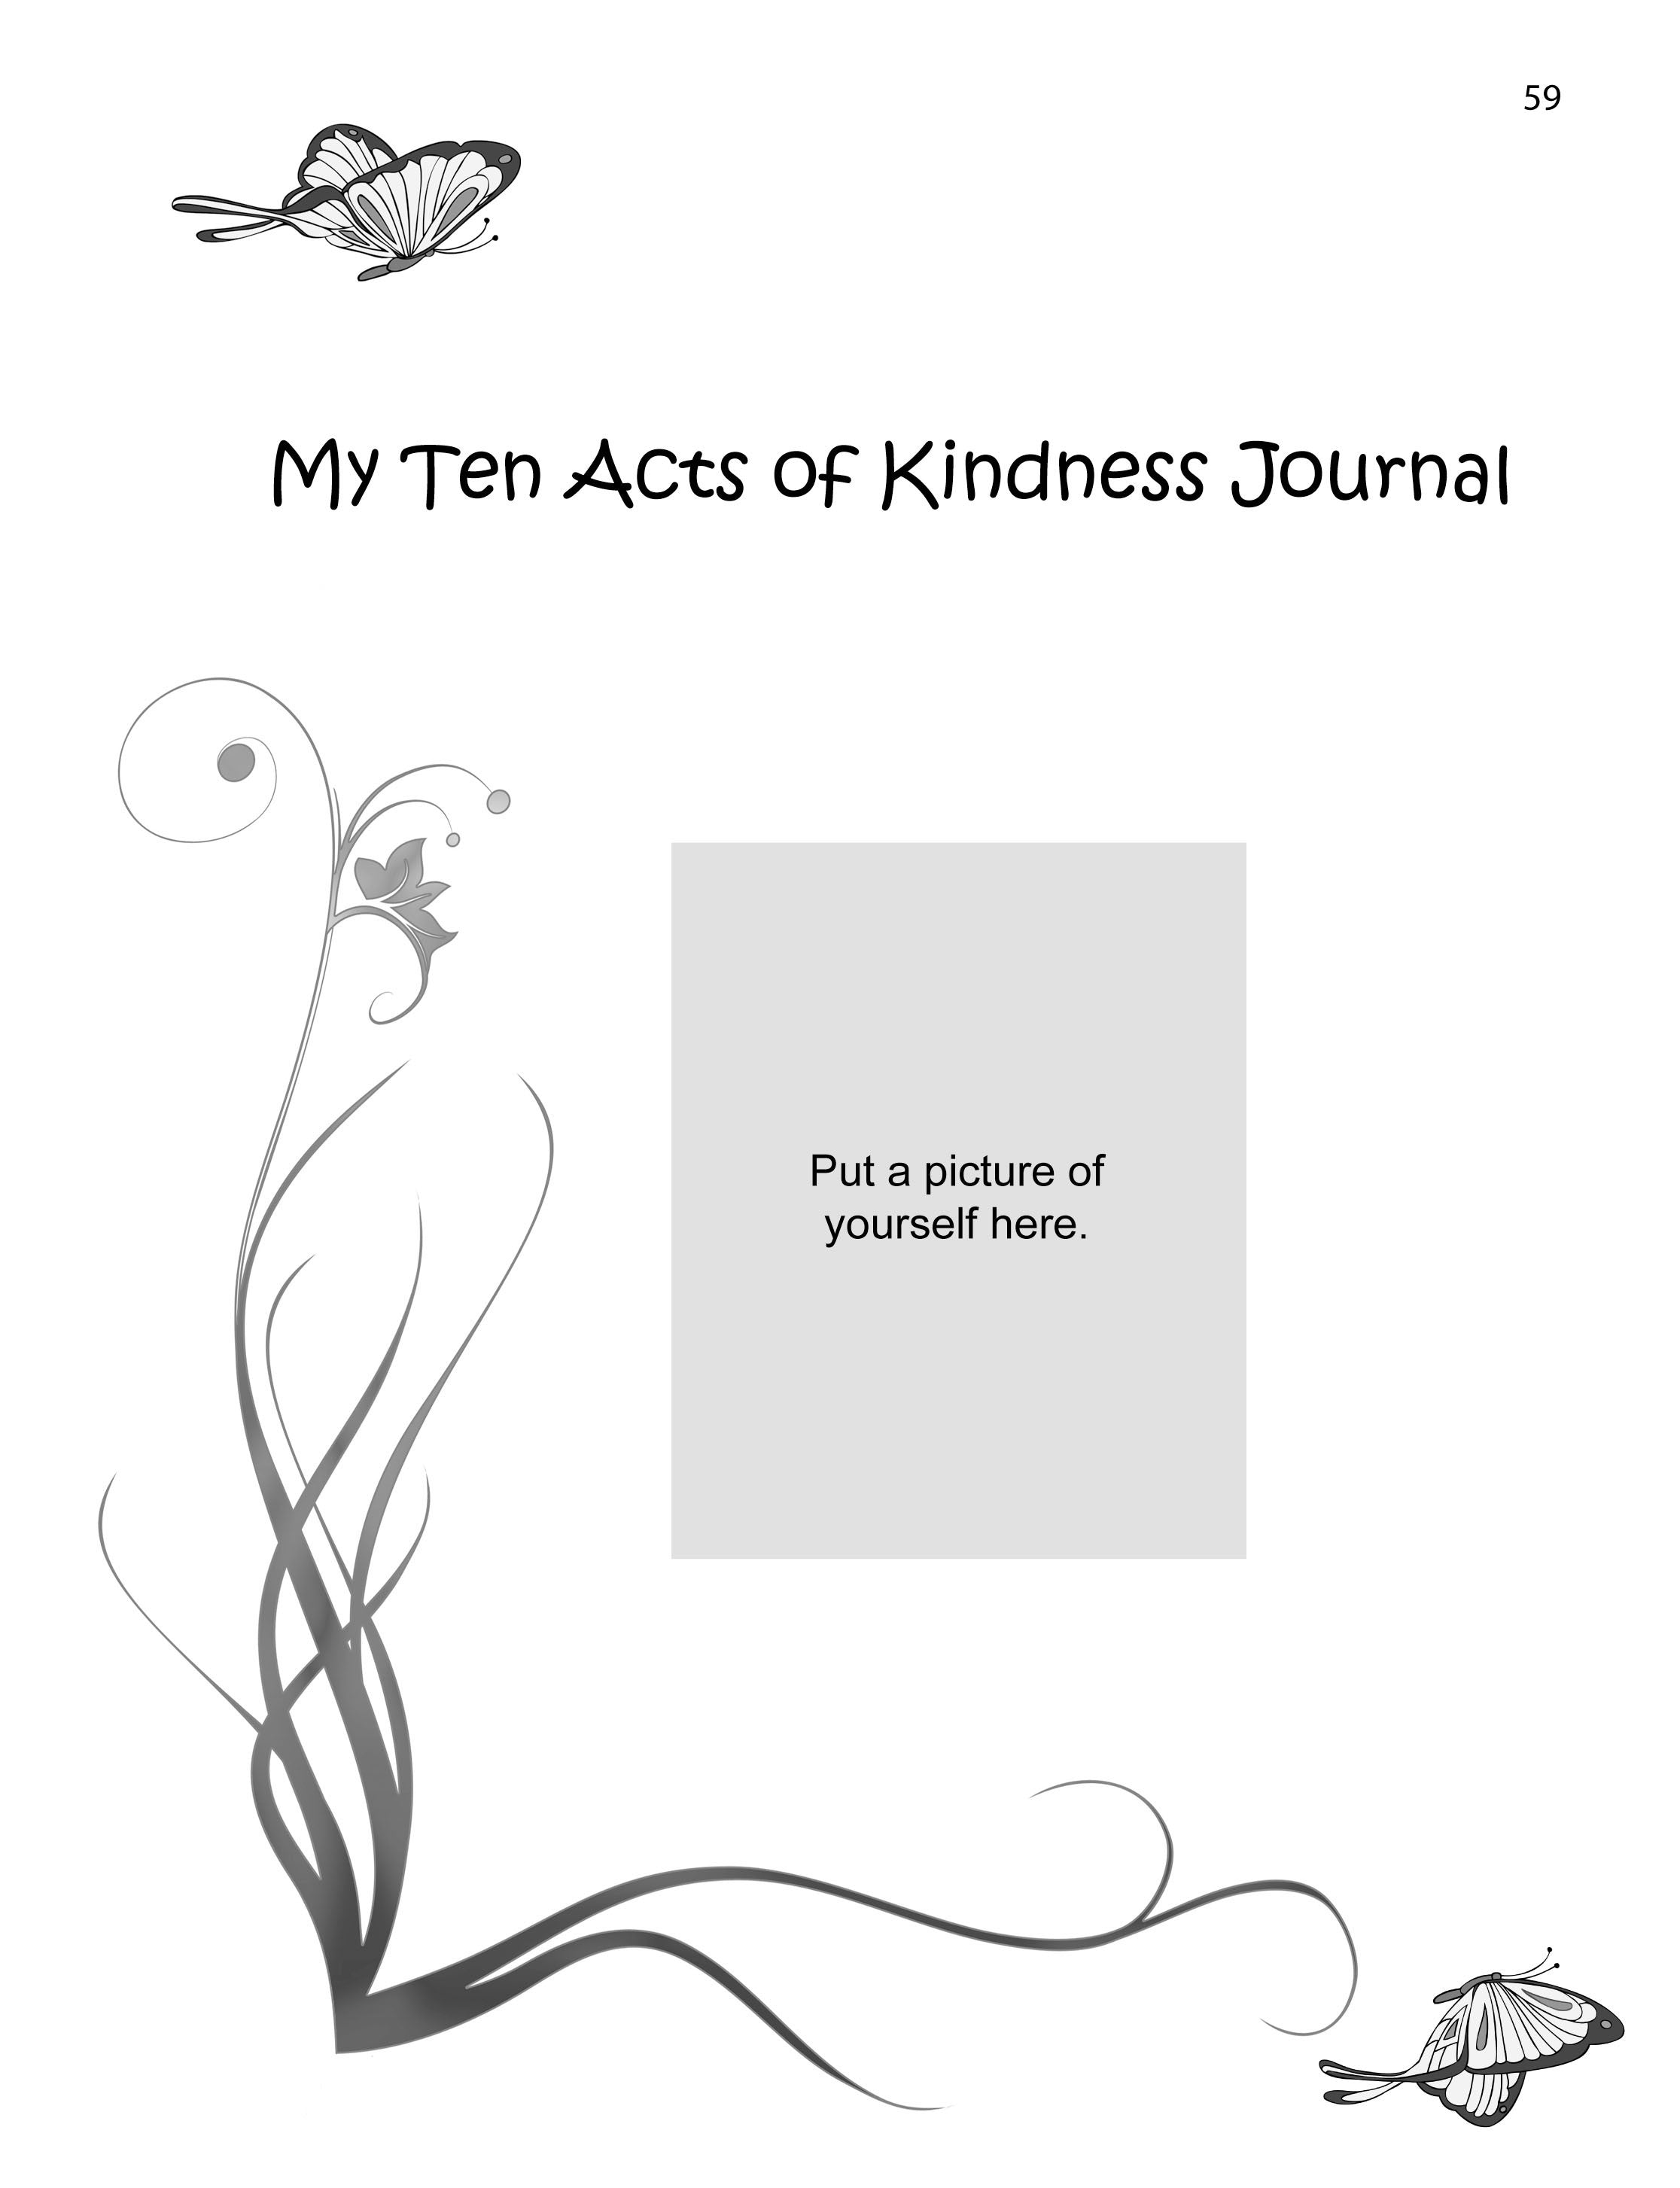 Ten Acts of Kindness Second Edition